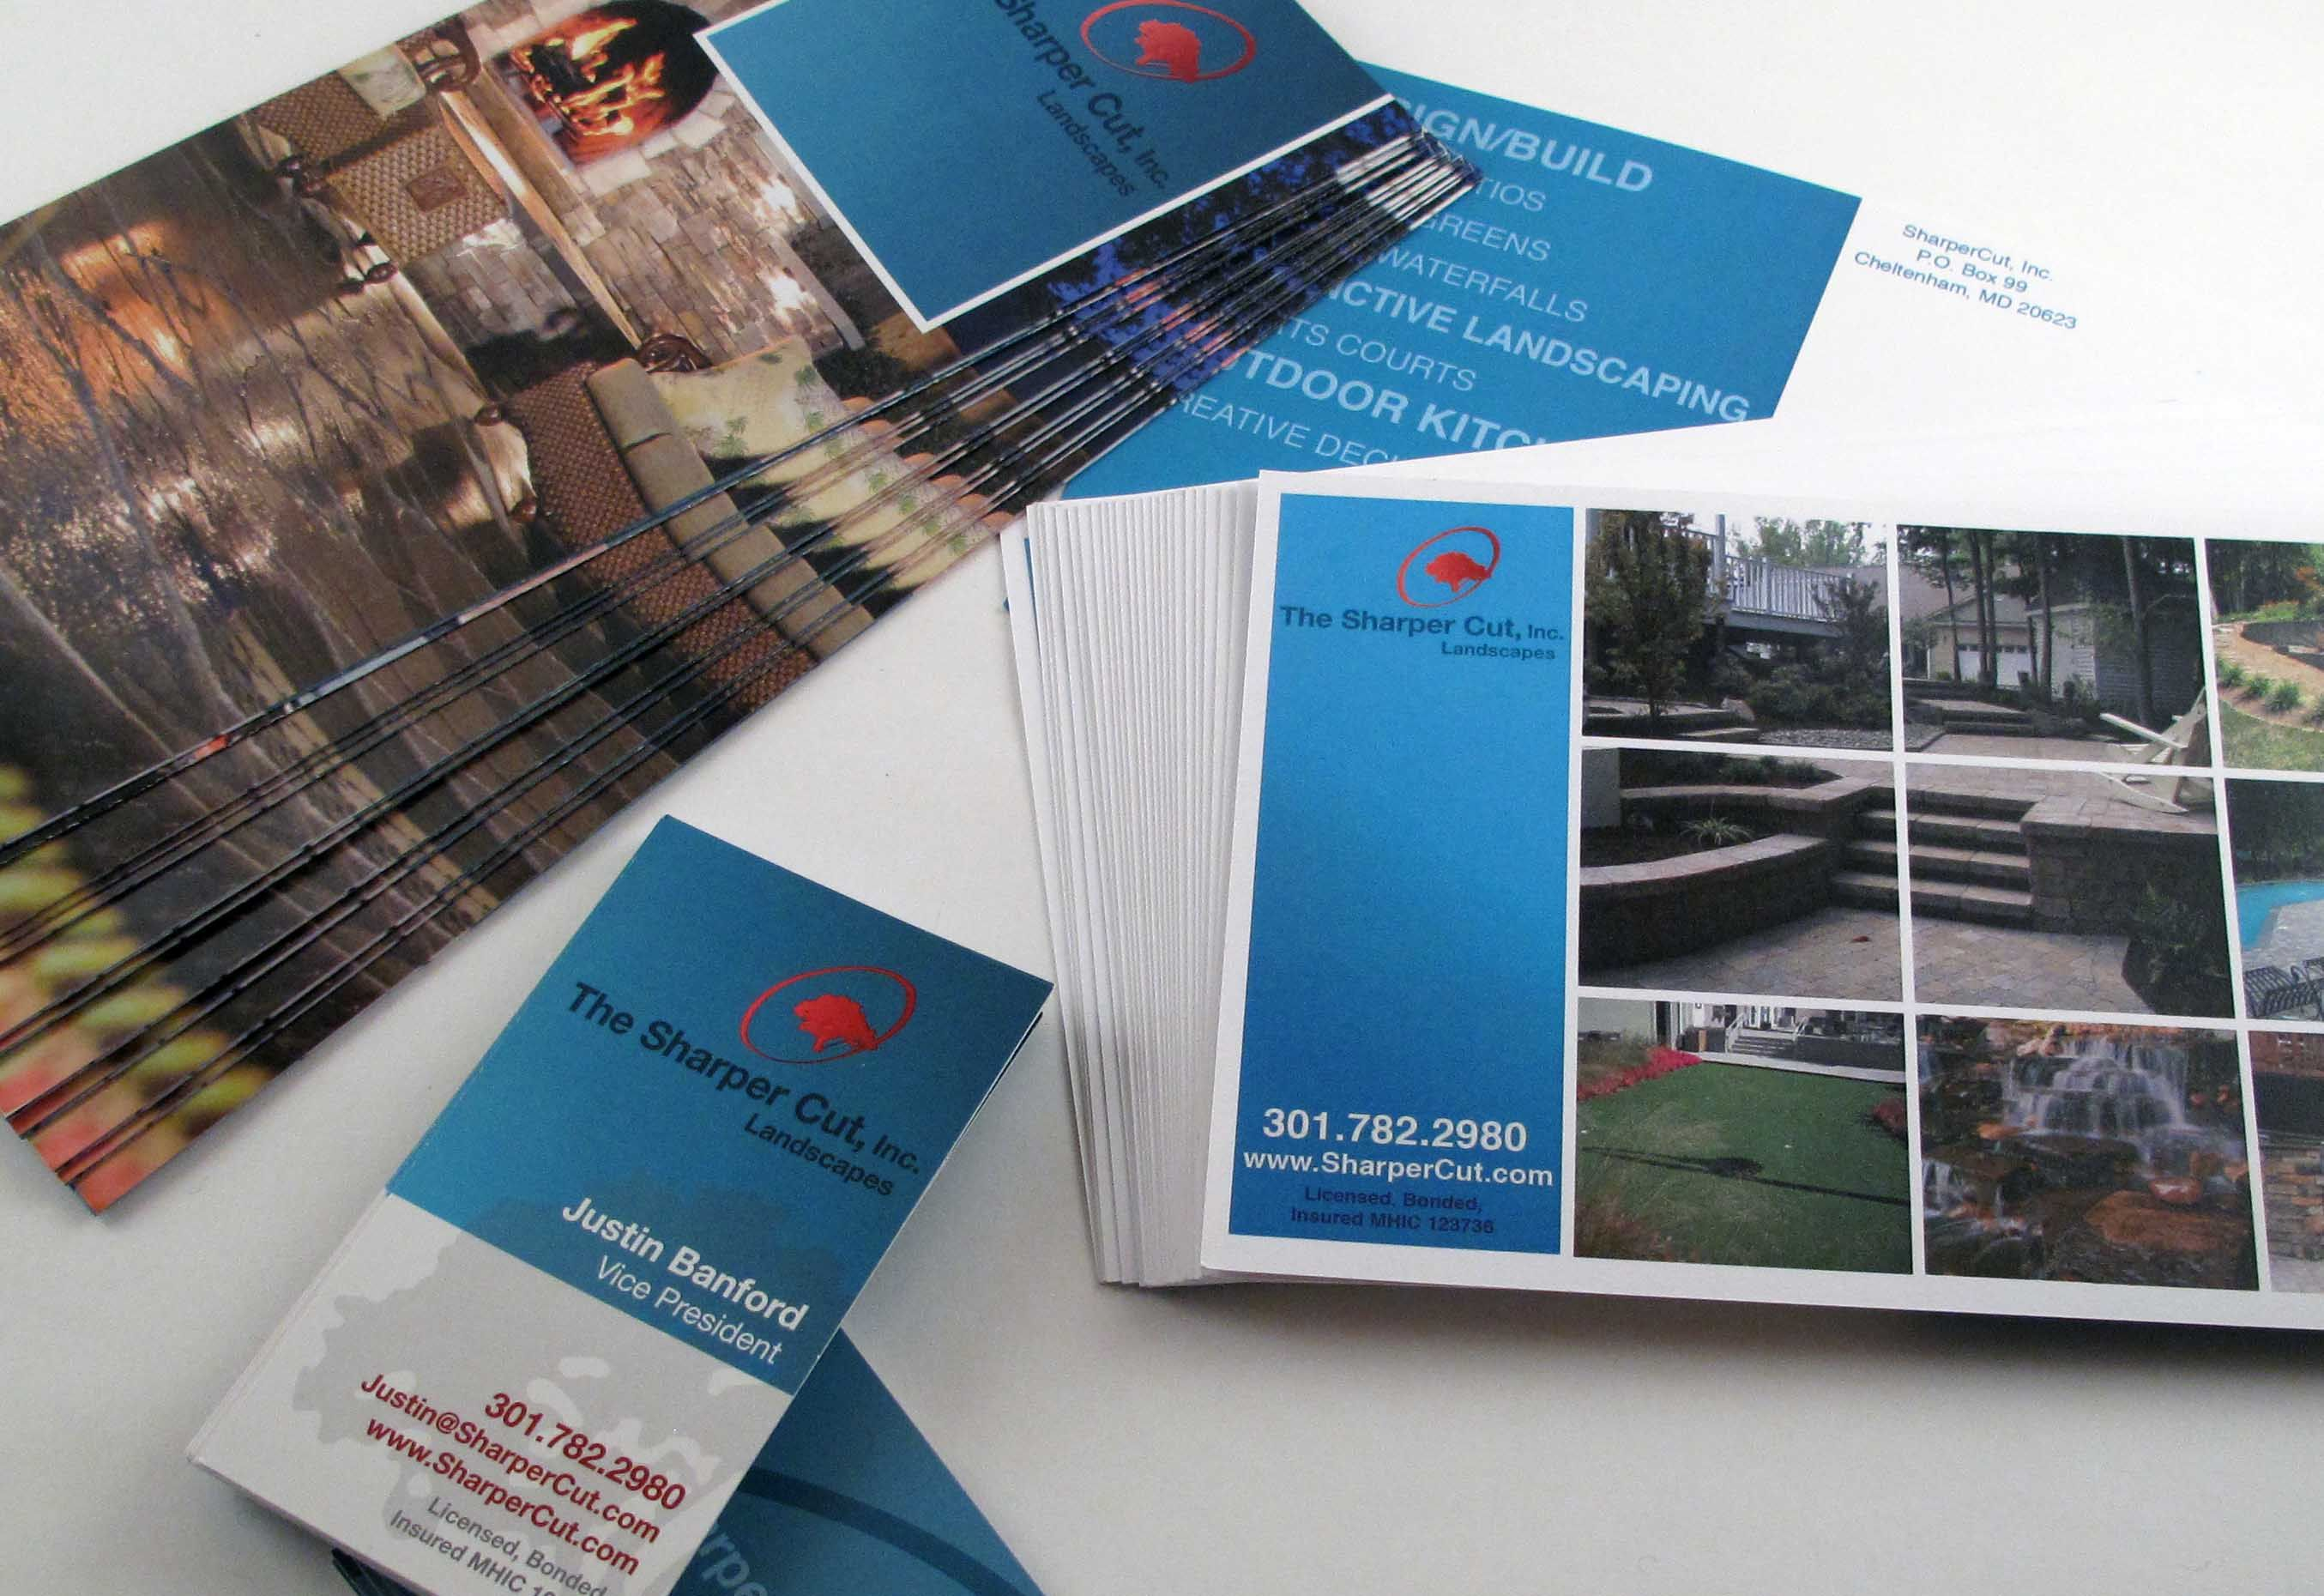 brochure postcards and business cards for the sharper cut inc